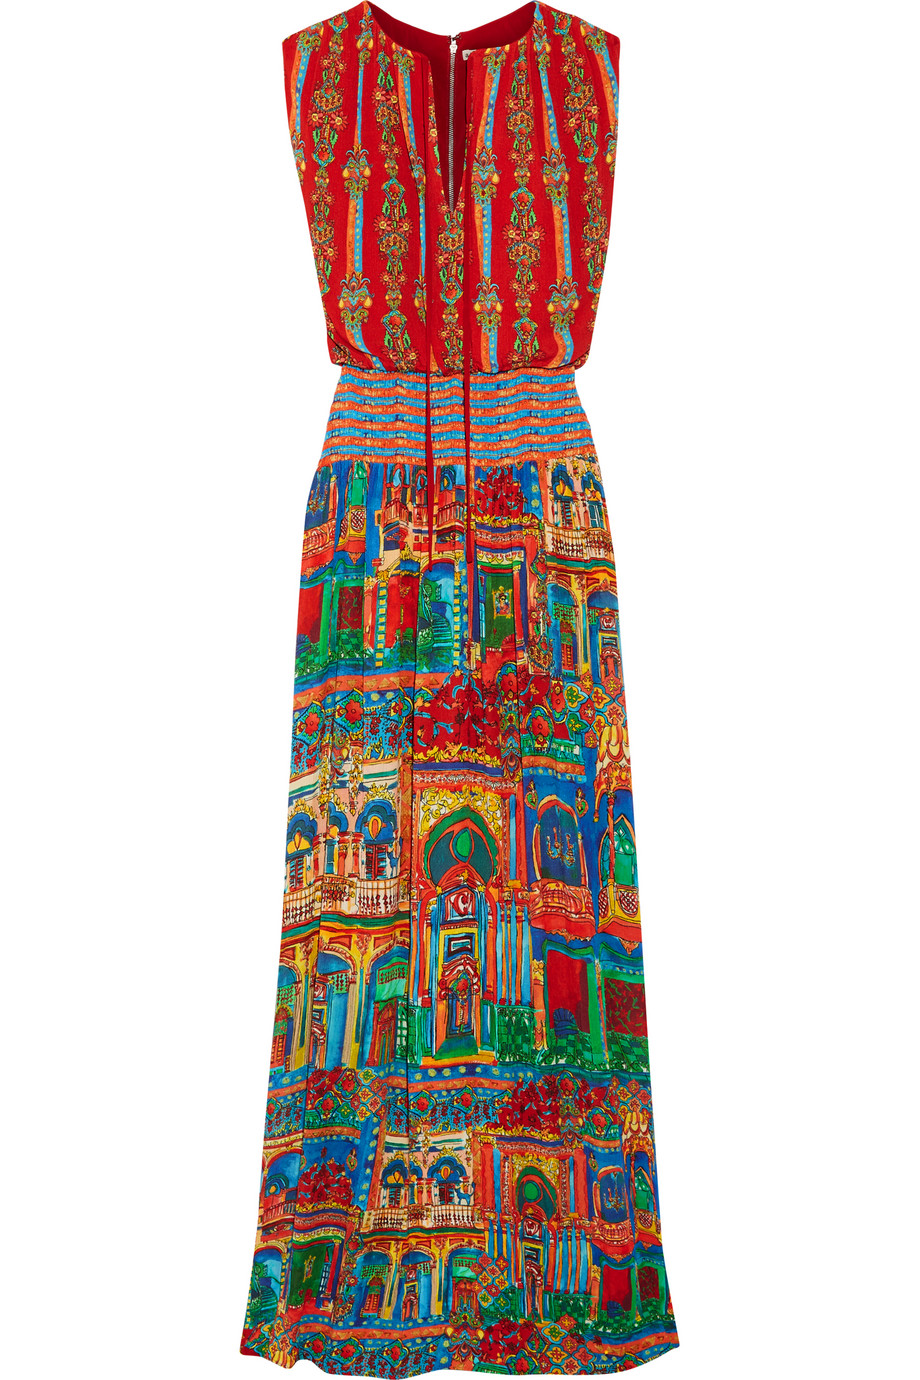 Alice + Olivia Lorelle Smocked Printed Voile Maxi Dress, Size: 8